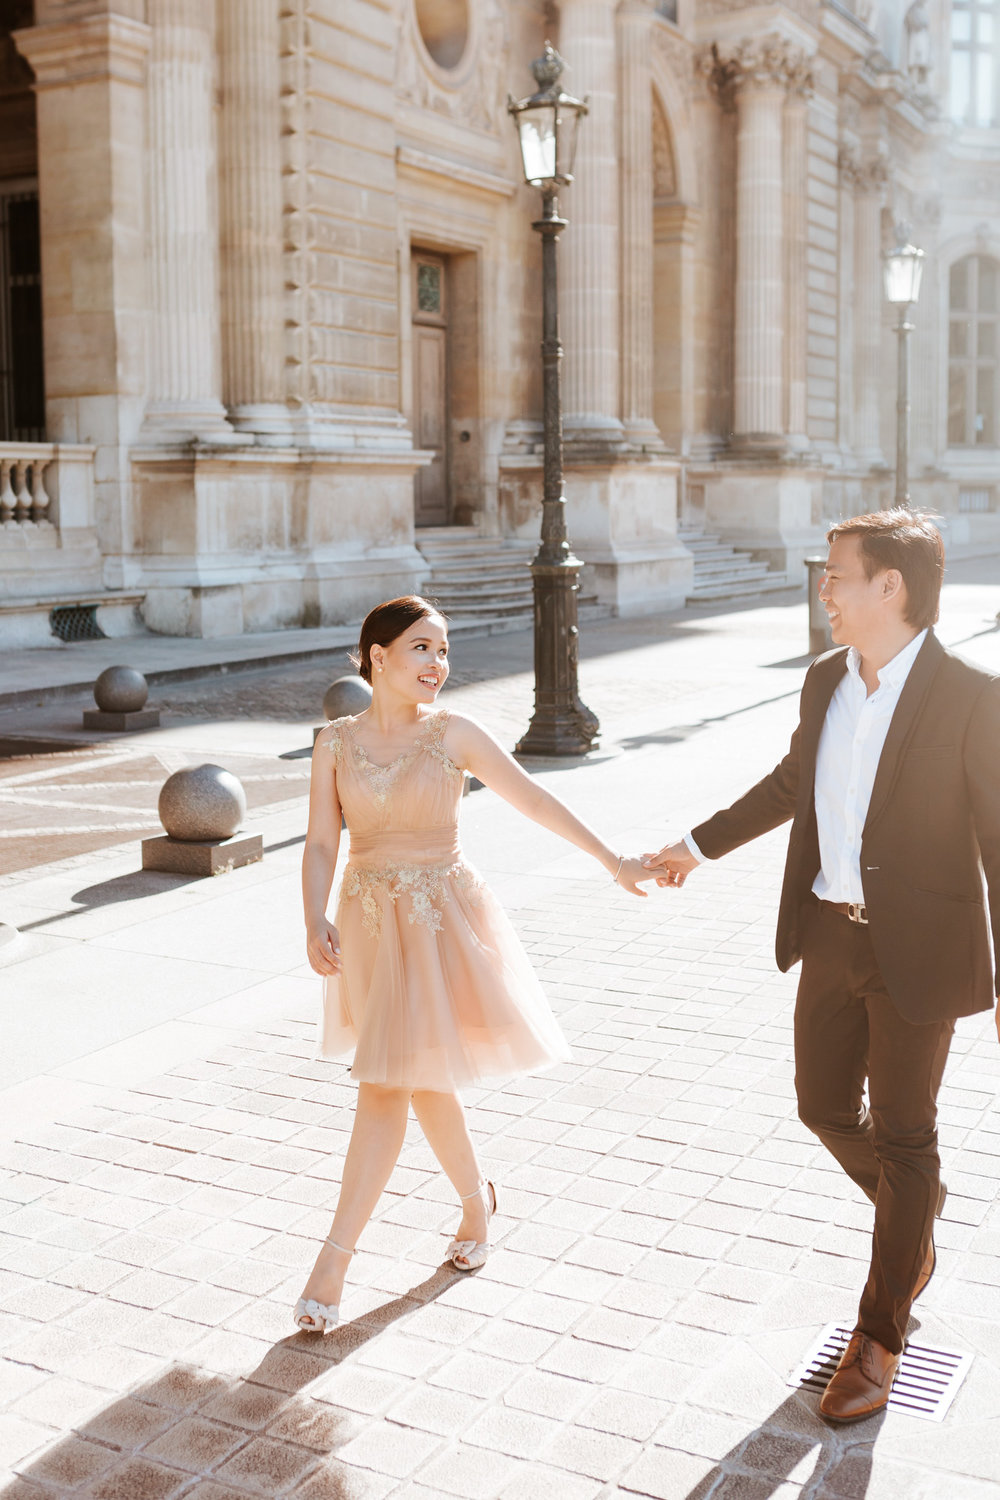 Pre-wedding couple portrait walking the courtyard of the Louvre Museum captured by Paris Photographer Federico Guendel